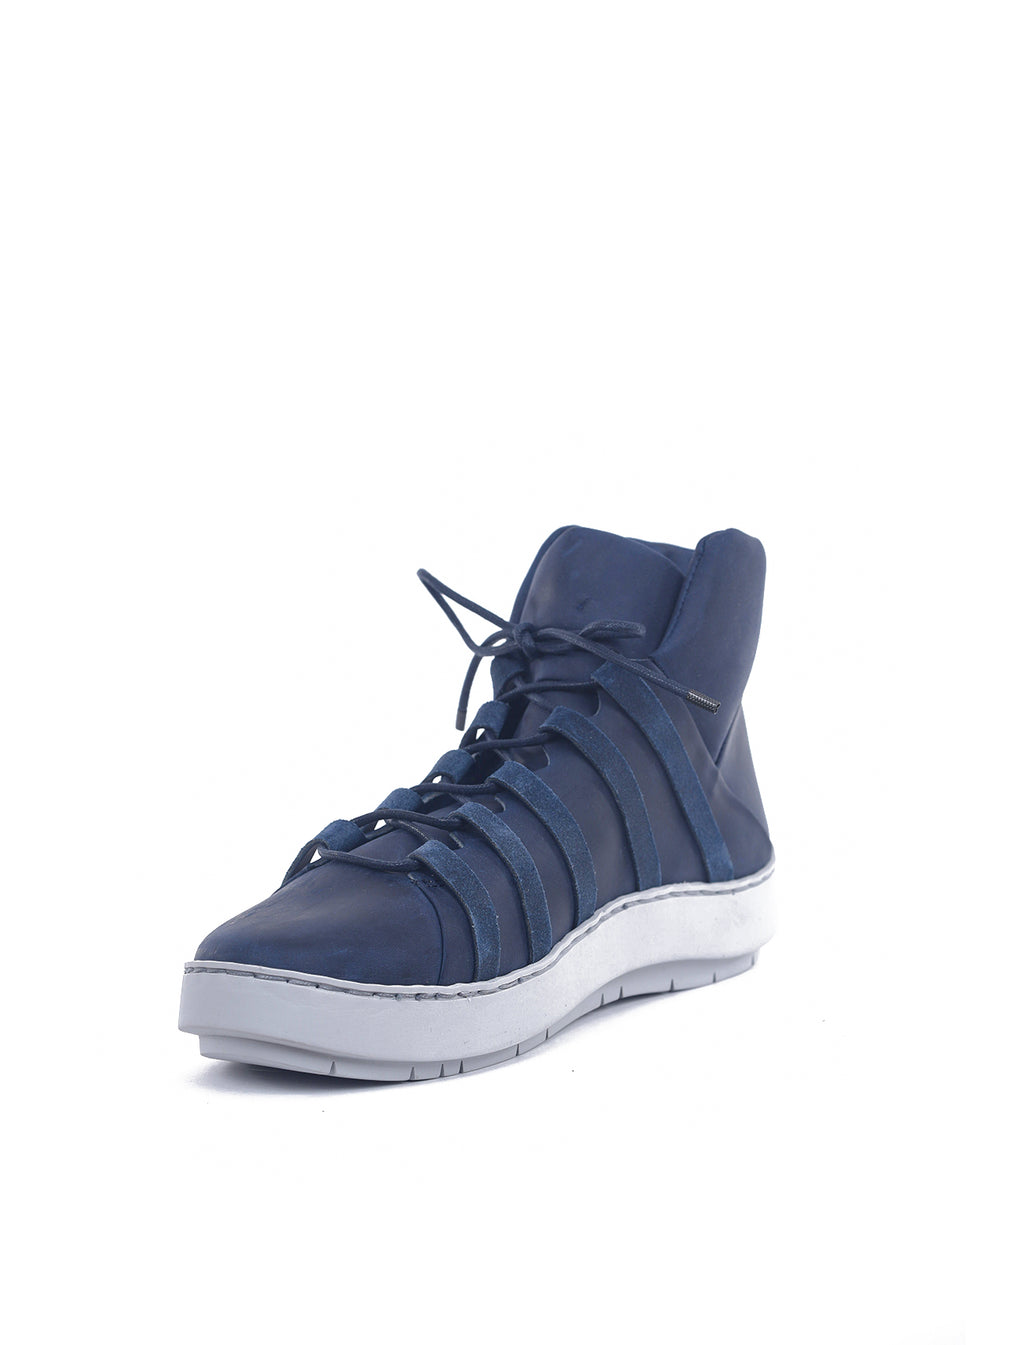 Trippen Shoes Ladder Swan Sneakers, Navy Pul